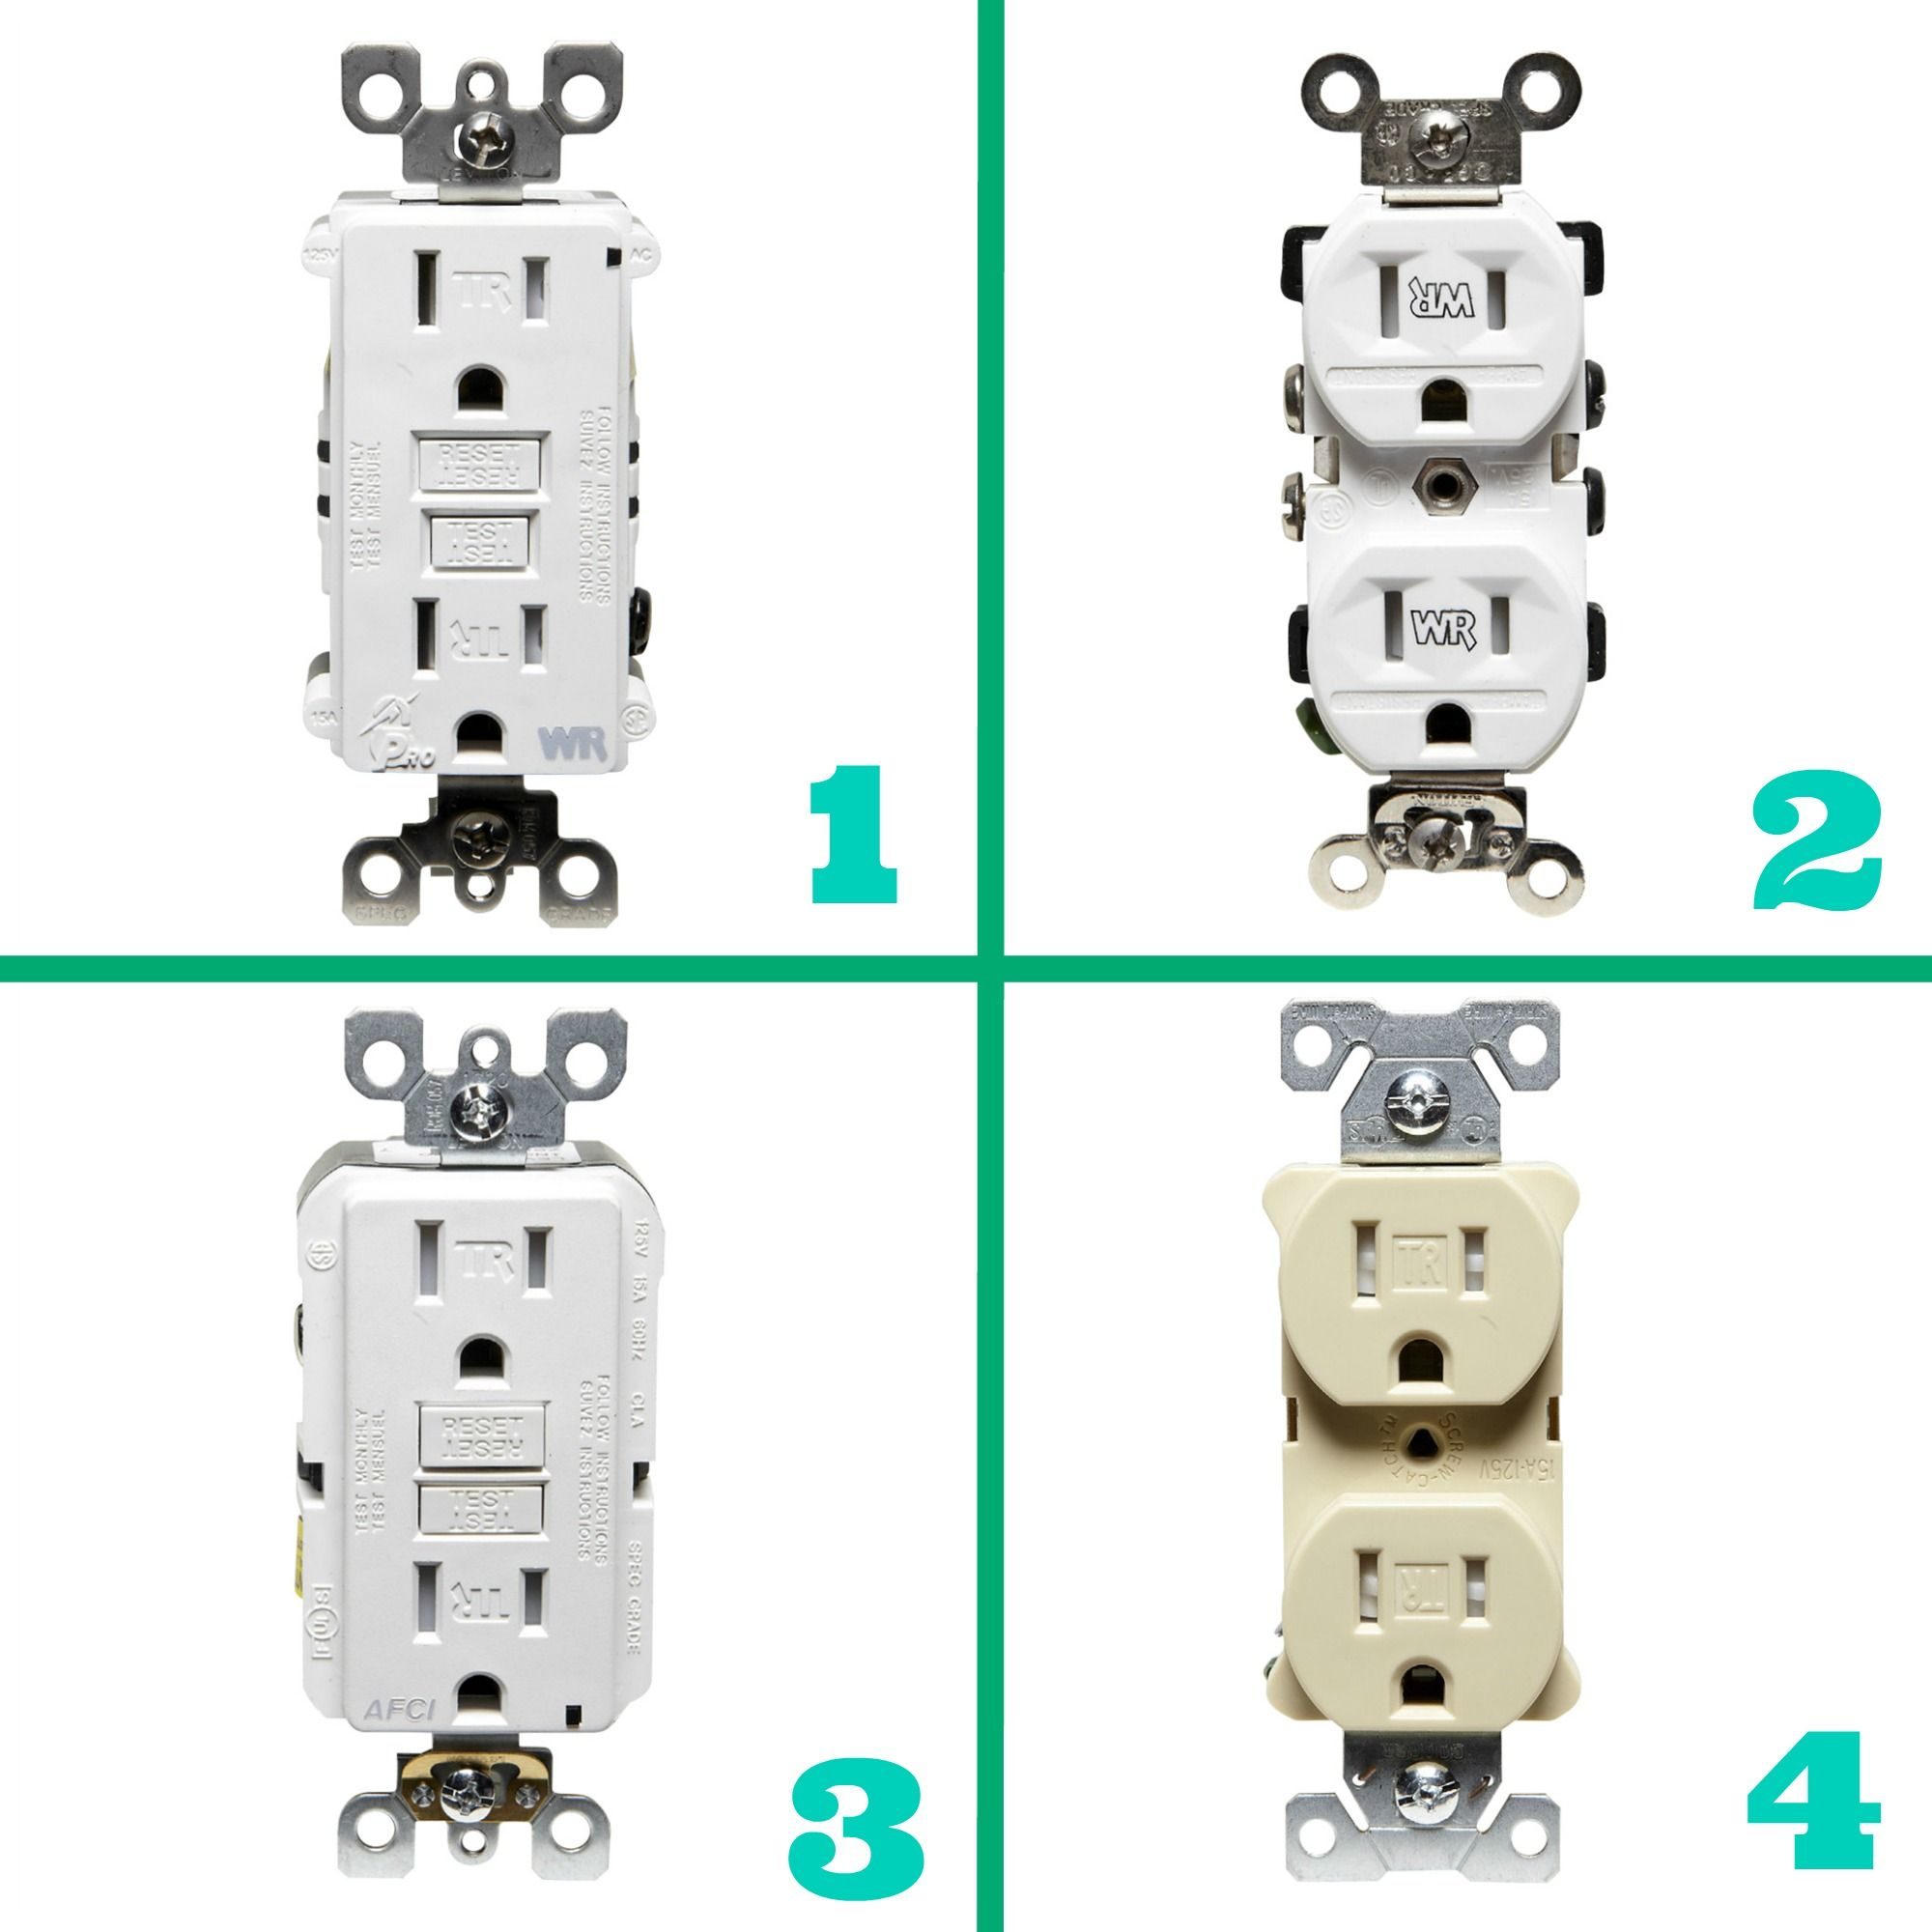 small resolution of learn the differences between these 4 types of electrical outlets http www